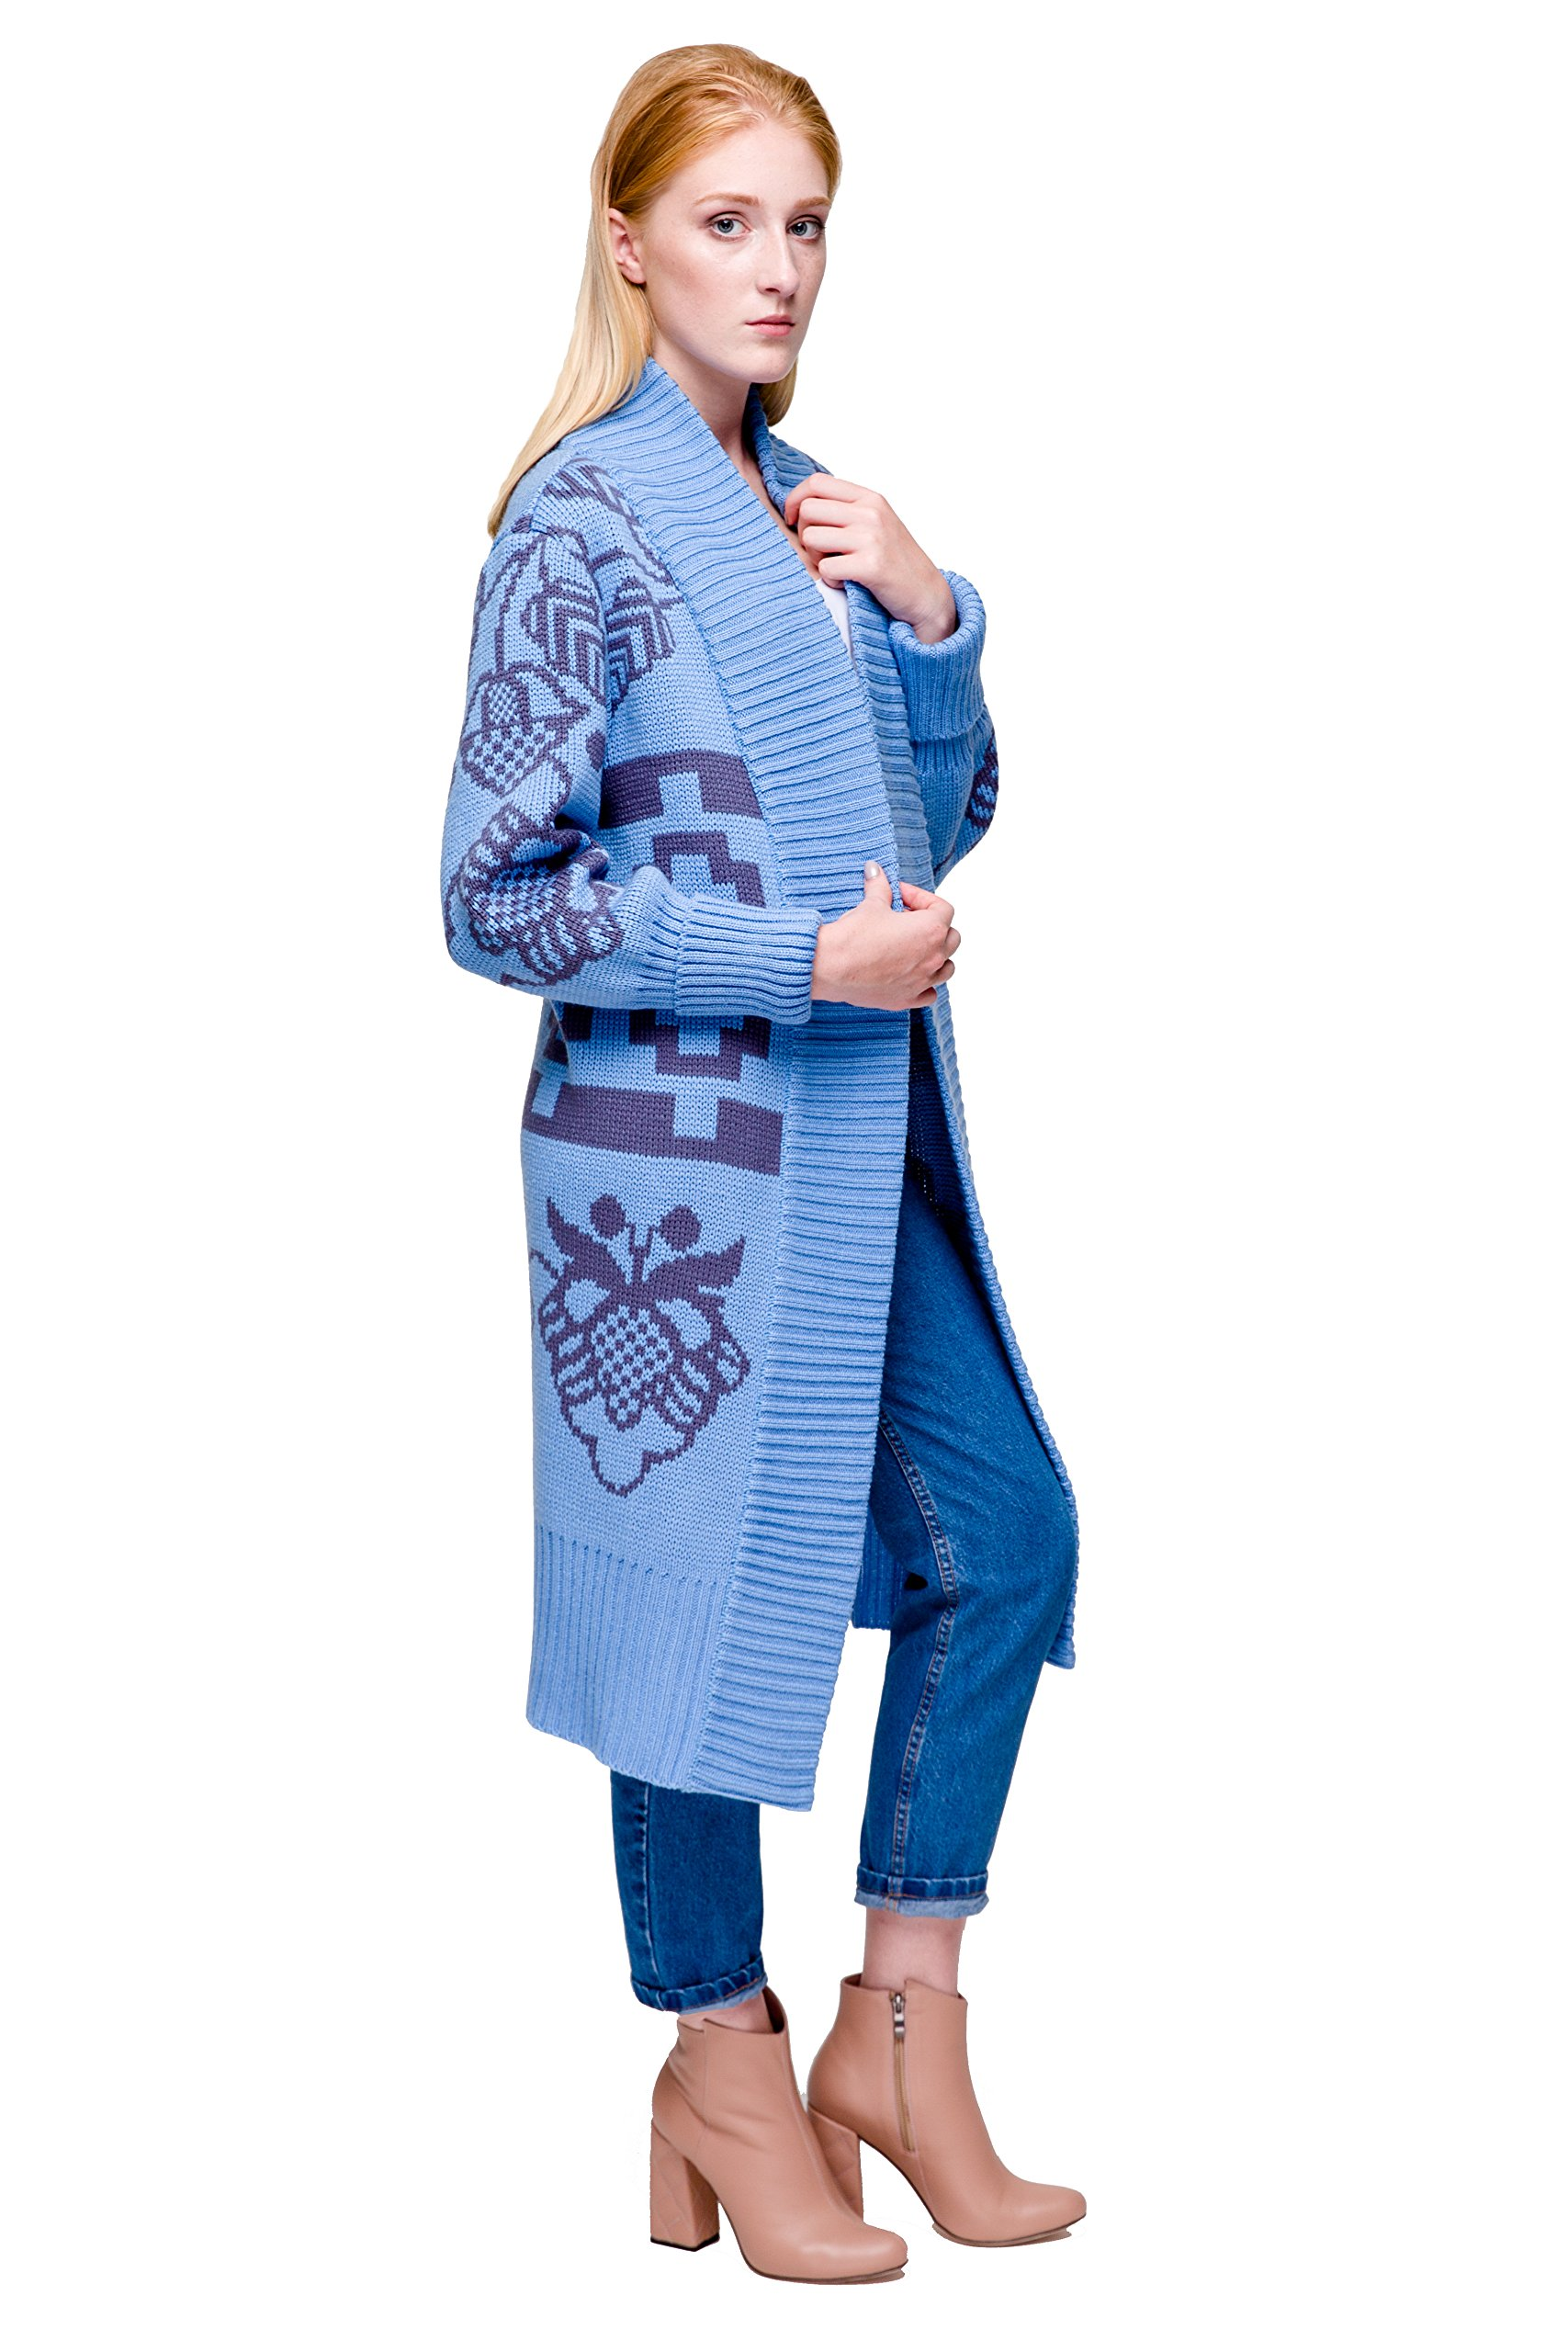 Long Knitted Cardigan Sweater For Women and Girls With Ethno-Inspired Ornament (Blue-Gray)